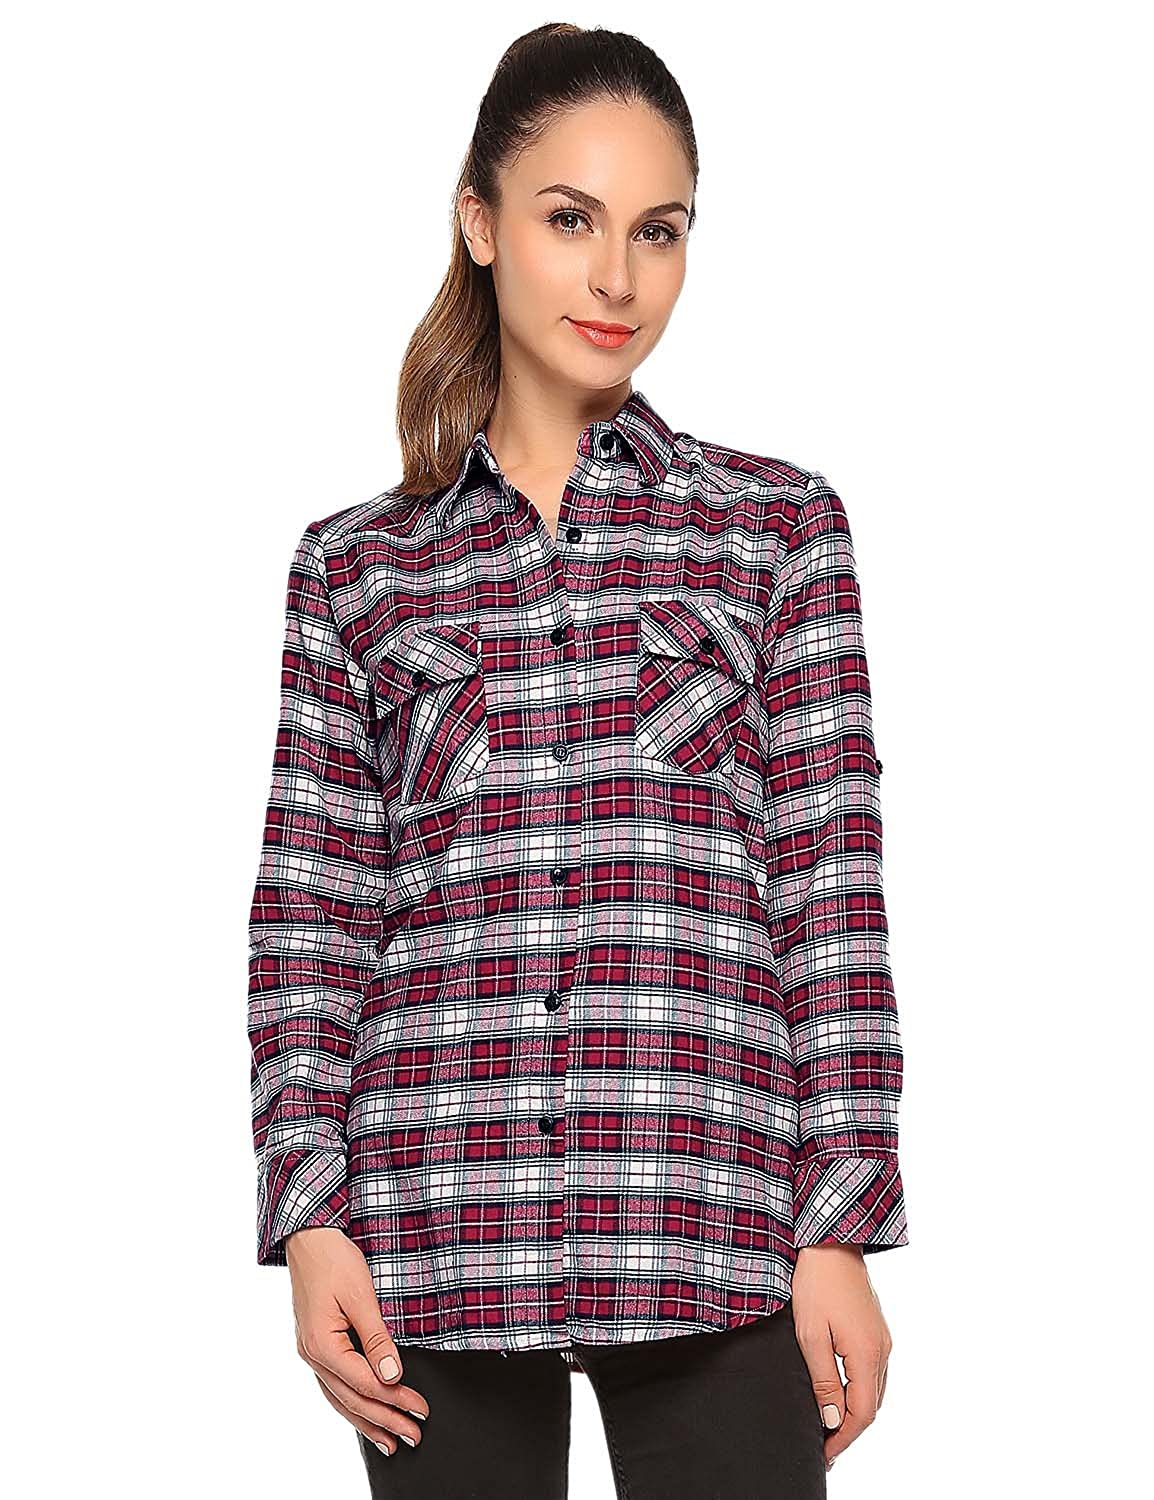 Checks 2 Match Women's Long Sleeve Flannel Plaid Shirt